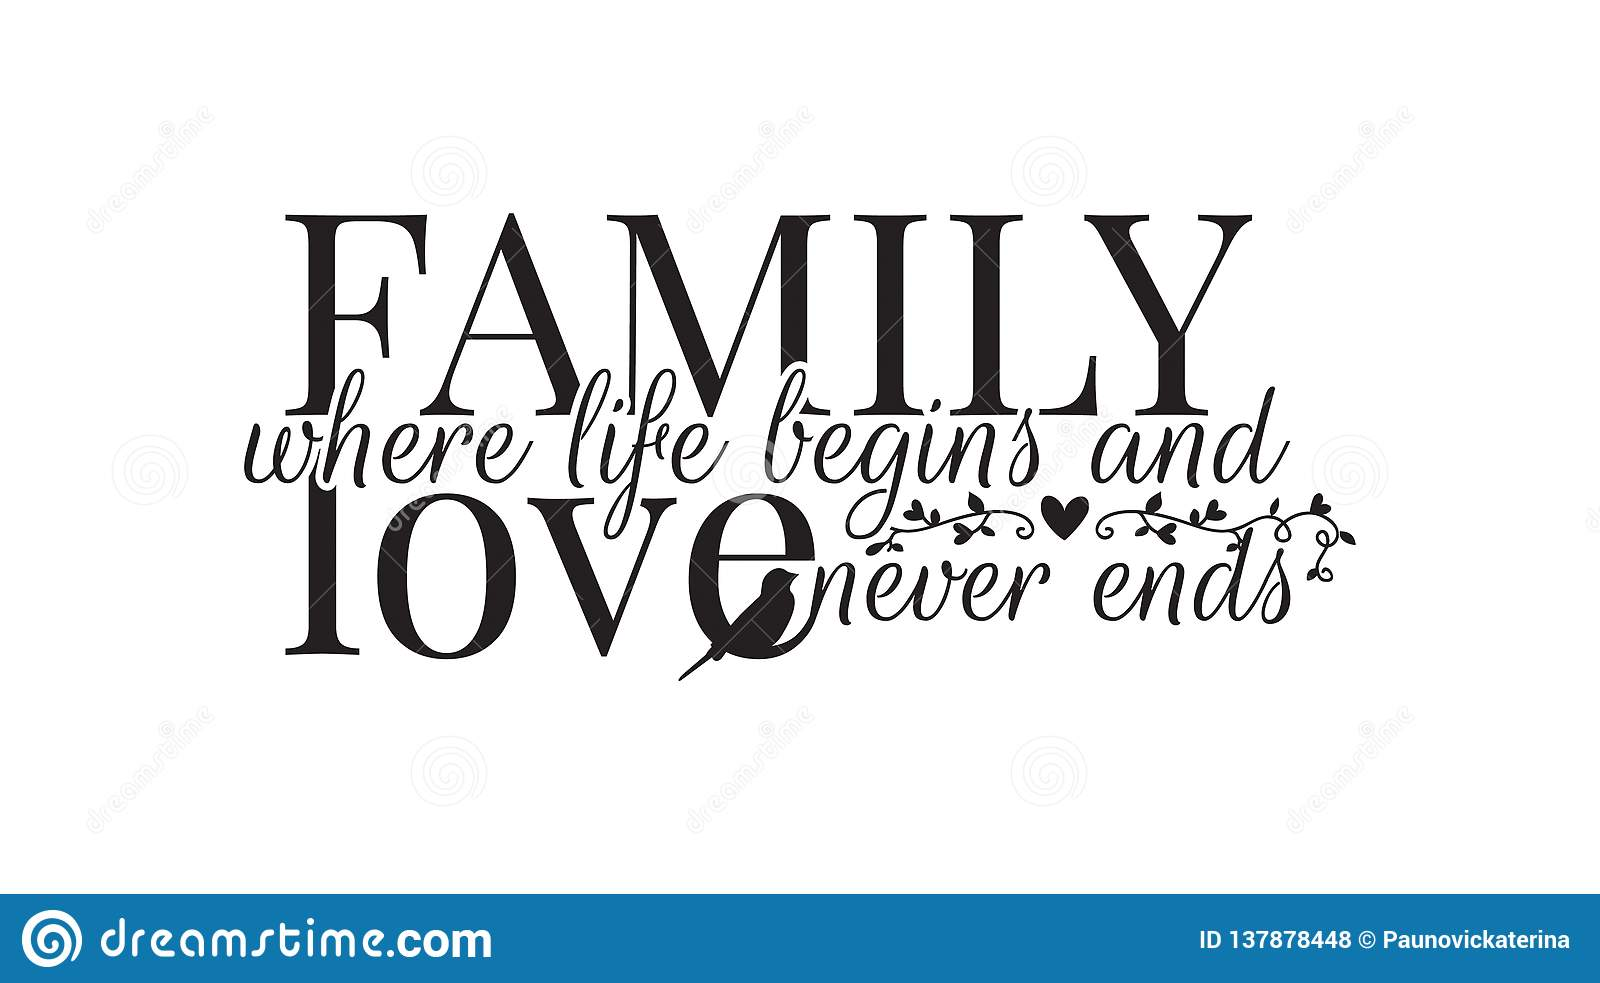 Family where life begins, and love never ends, Wall Decals, Wording Design